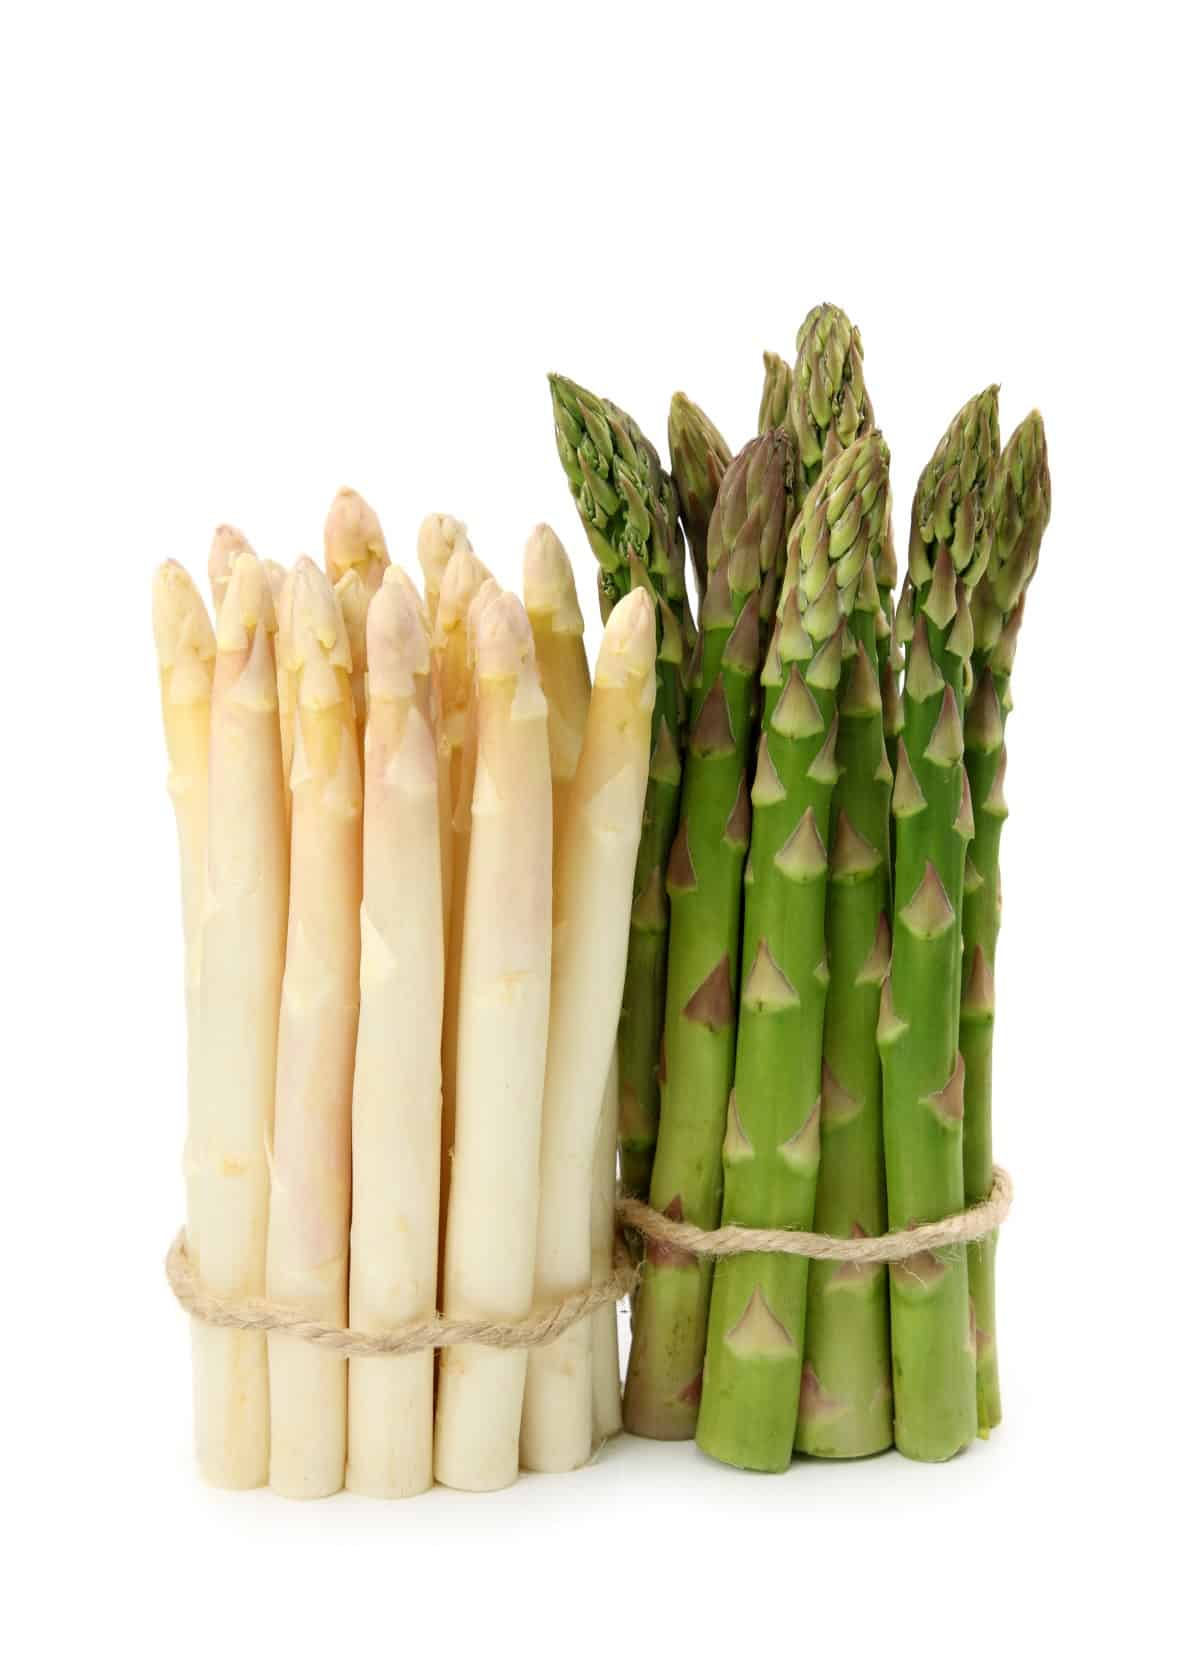 Bunch of white and green asparagus standing on a white surface